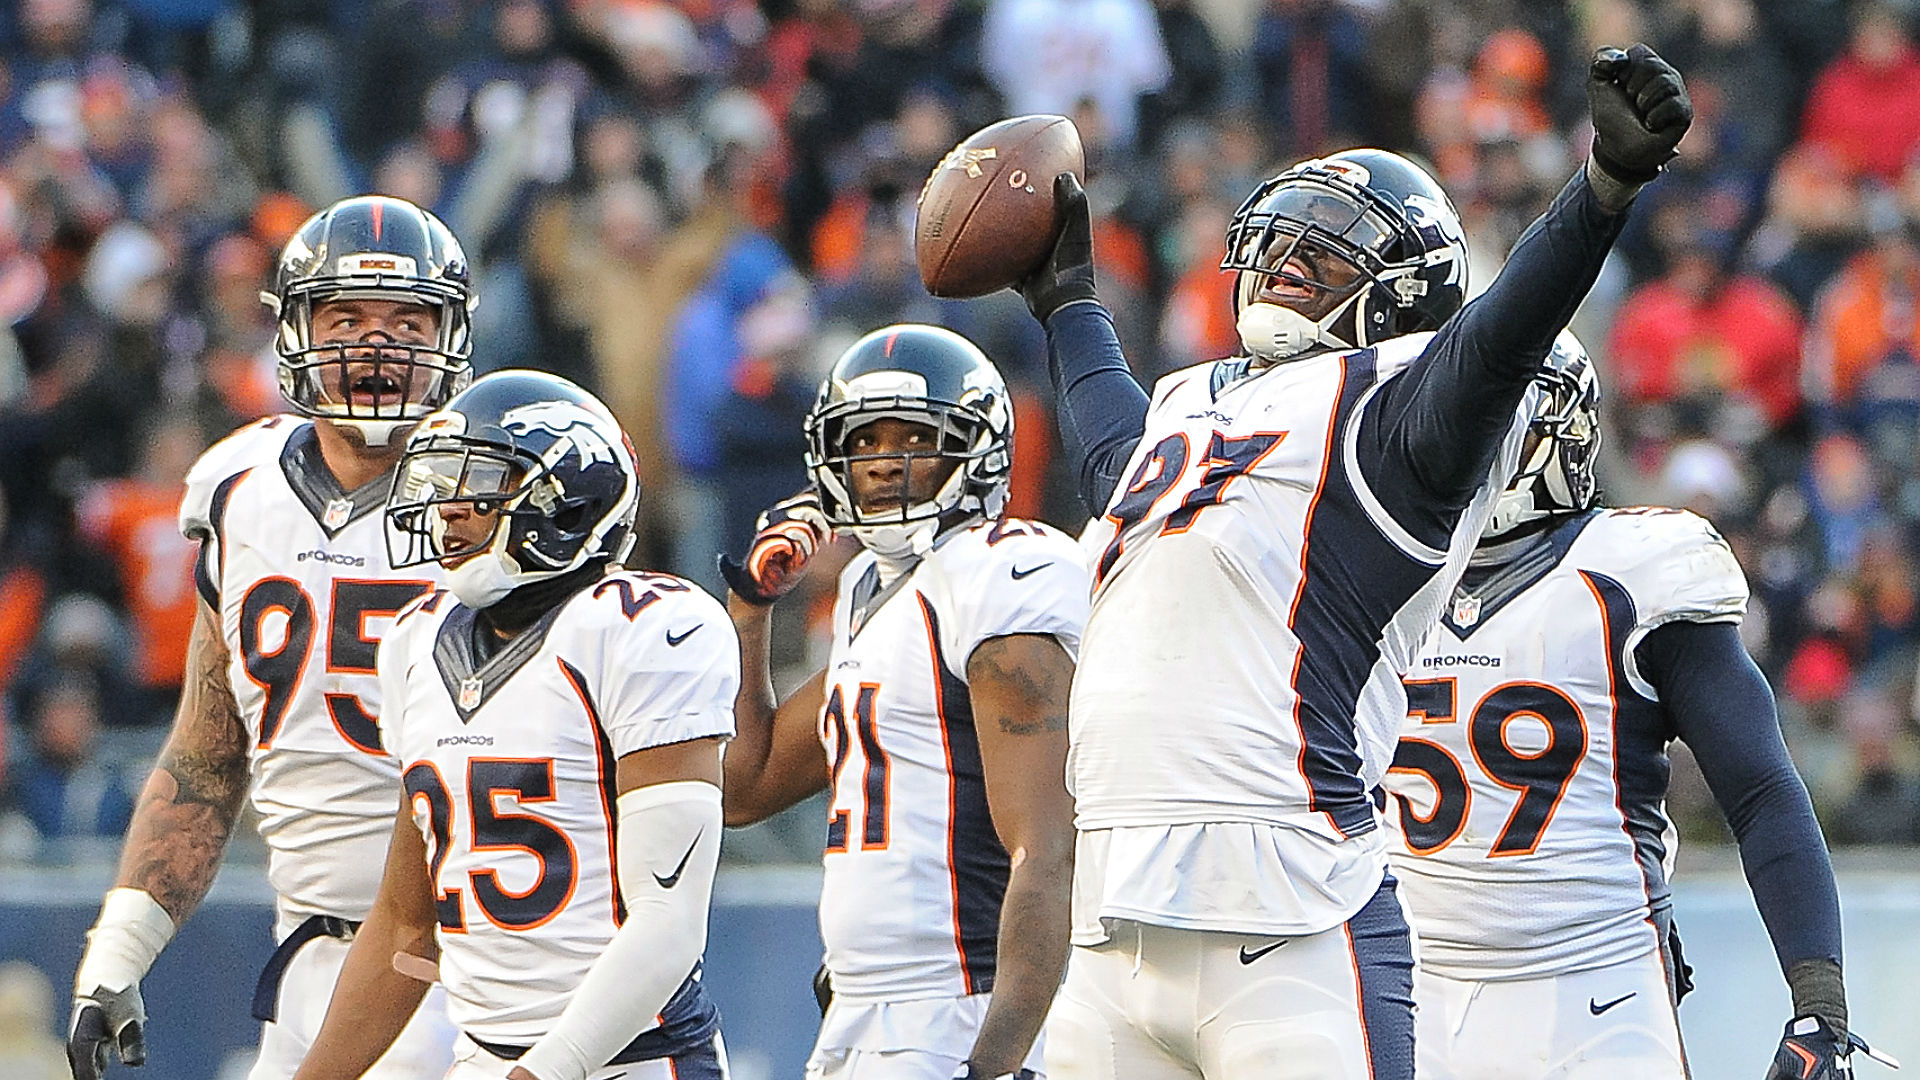 Patriots at Broncos betting lines and picks - Top defenses cause total to plummet